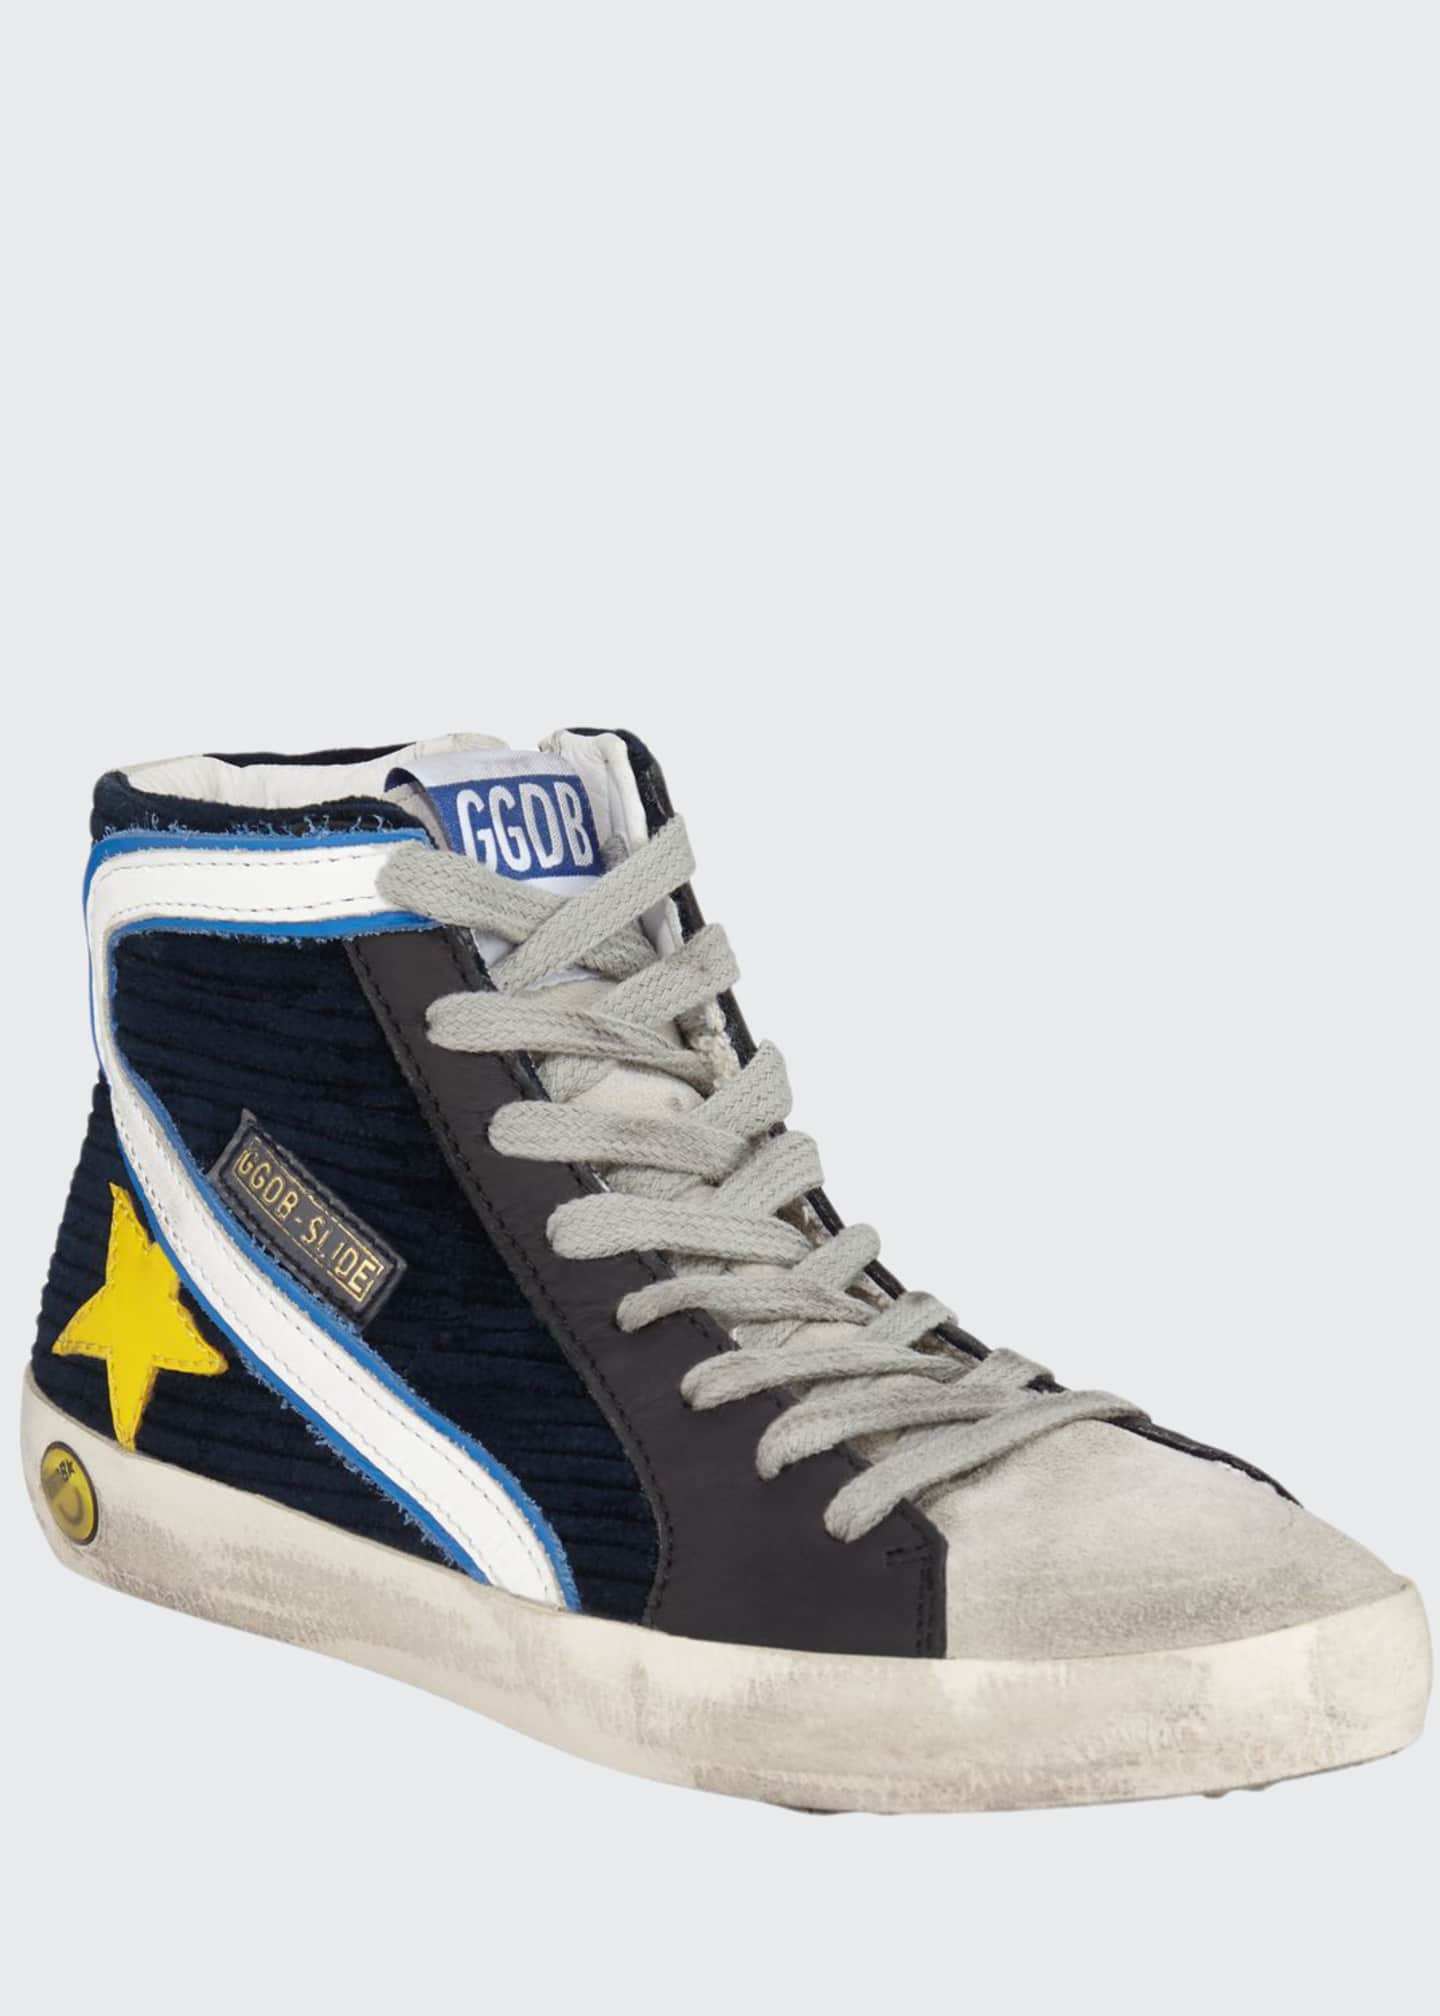 Golden Goose Boy's Slide High-Top Corduroy Sneakers, Toddler/Kids